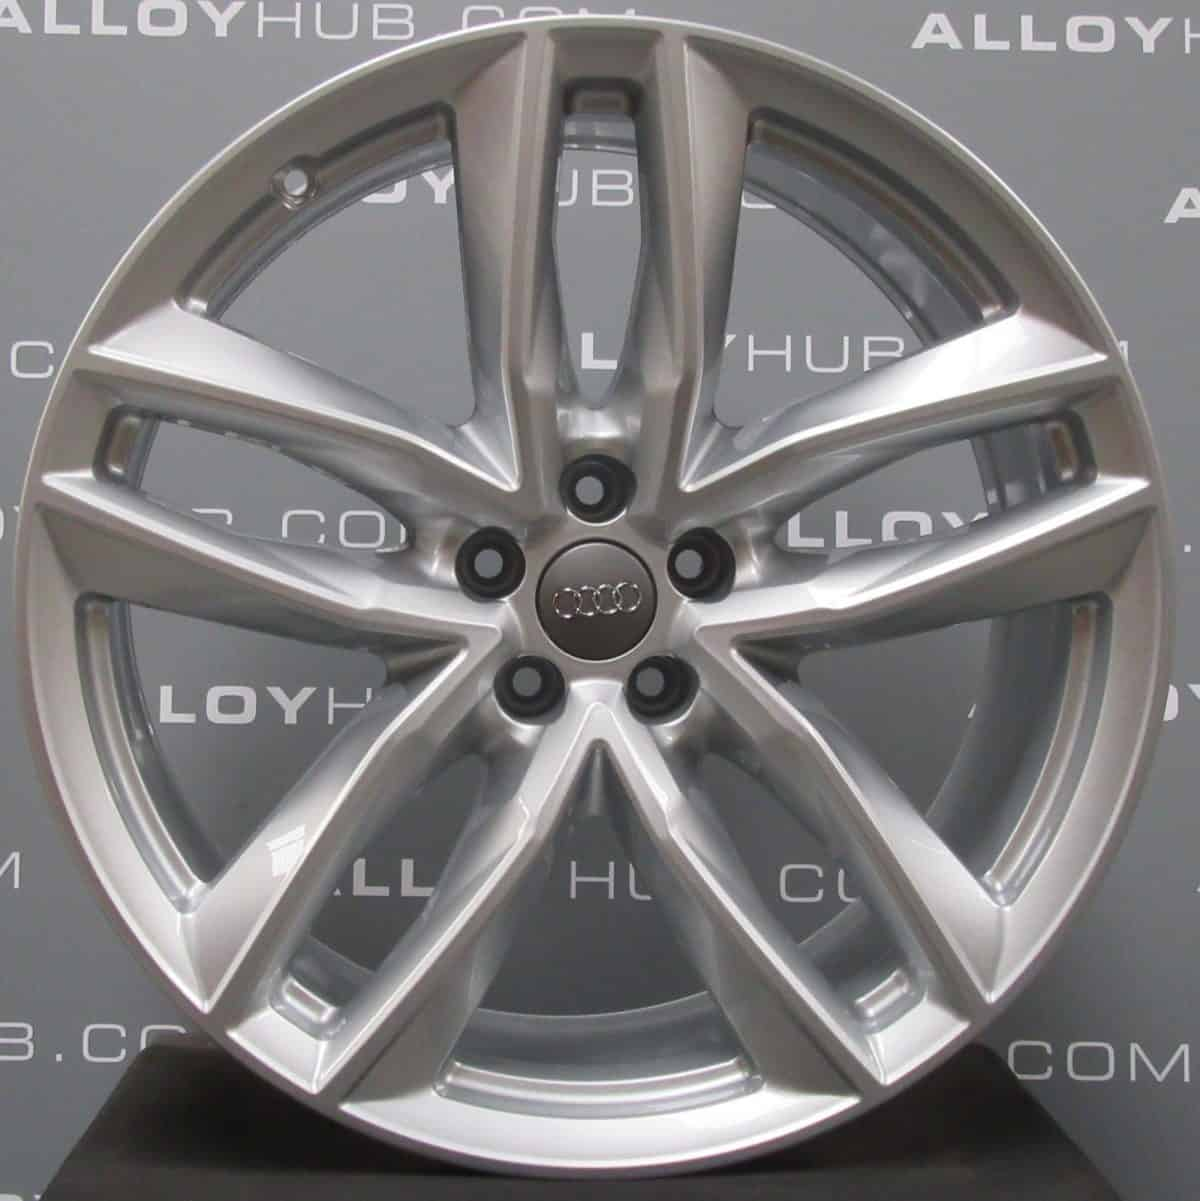 Genuine Audi Q7 4M RS 21″ inch 5 Twin Spoke Alloy Wheels with Silver Finish 4M0 601 025 S